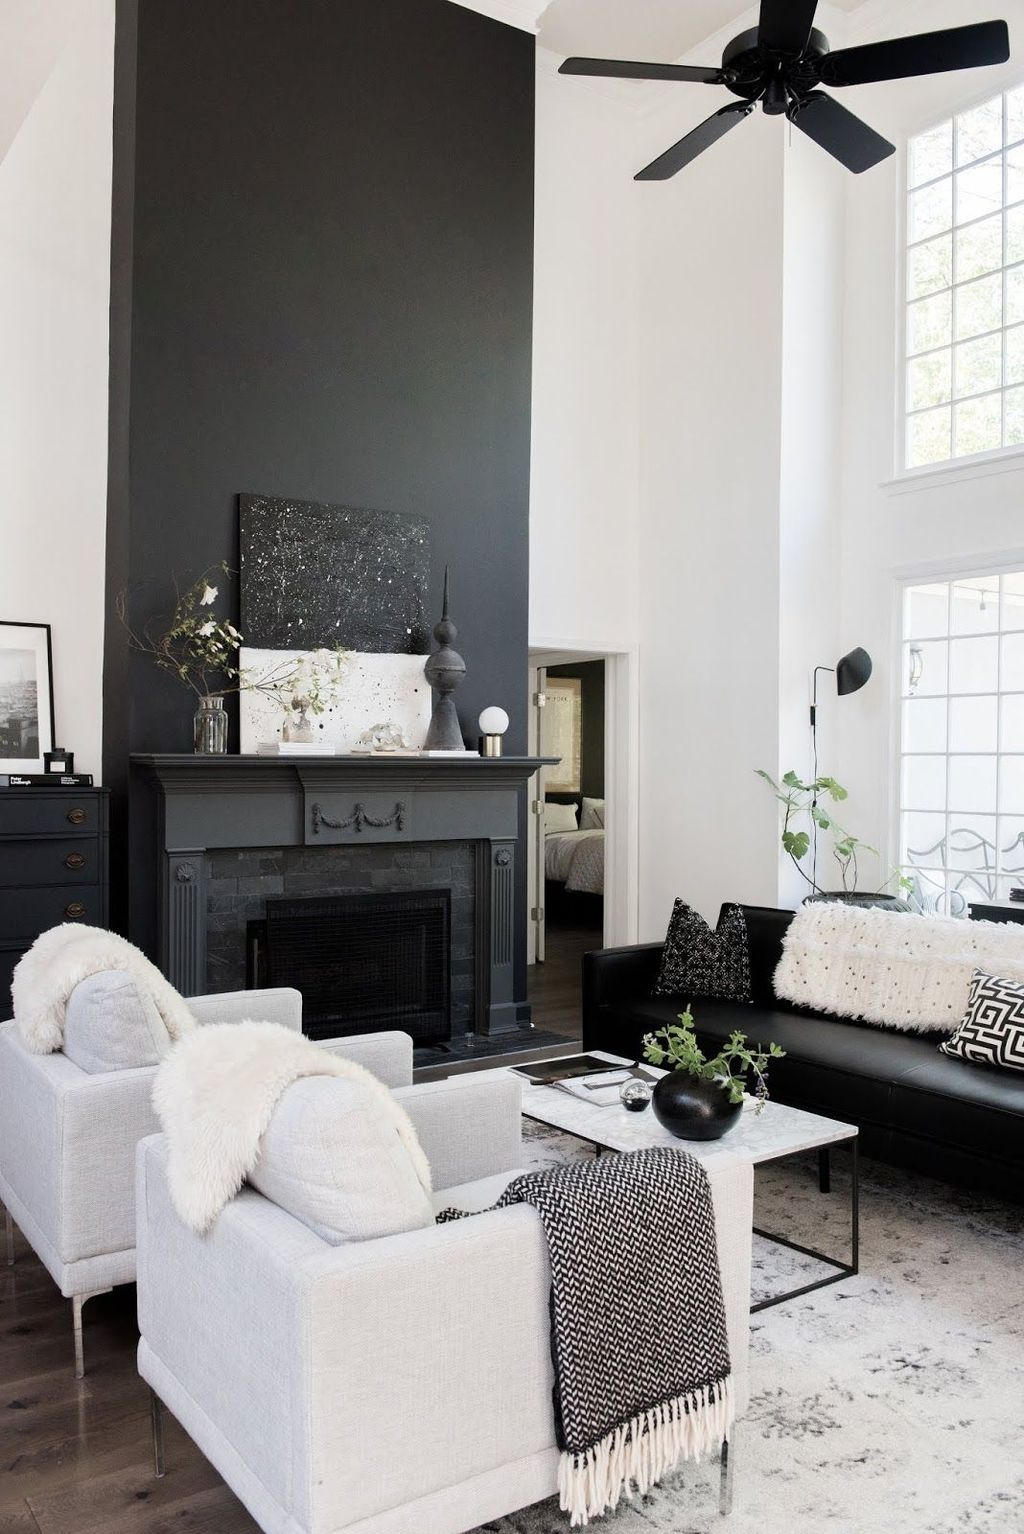 living room, wooden floor, black accent wall, black fireplace, black sofa, white chairs, white marble coffee table, white wall, white patterned rug